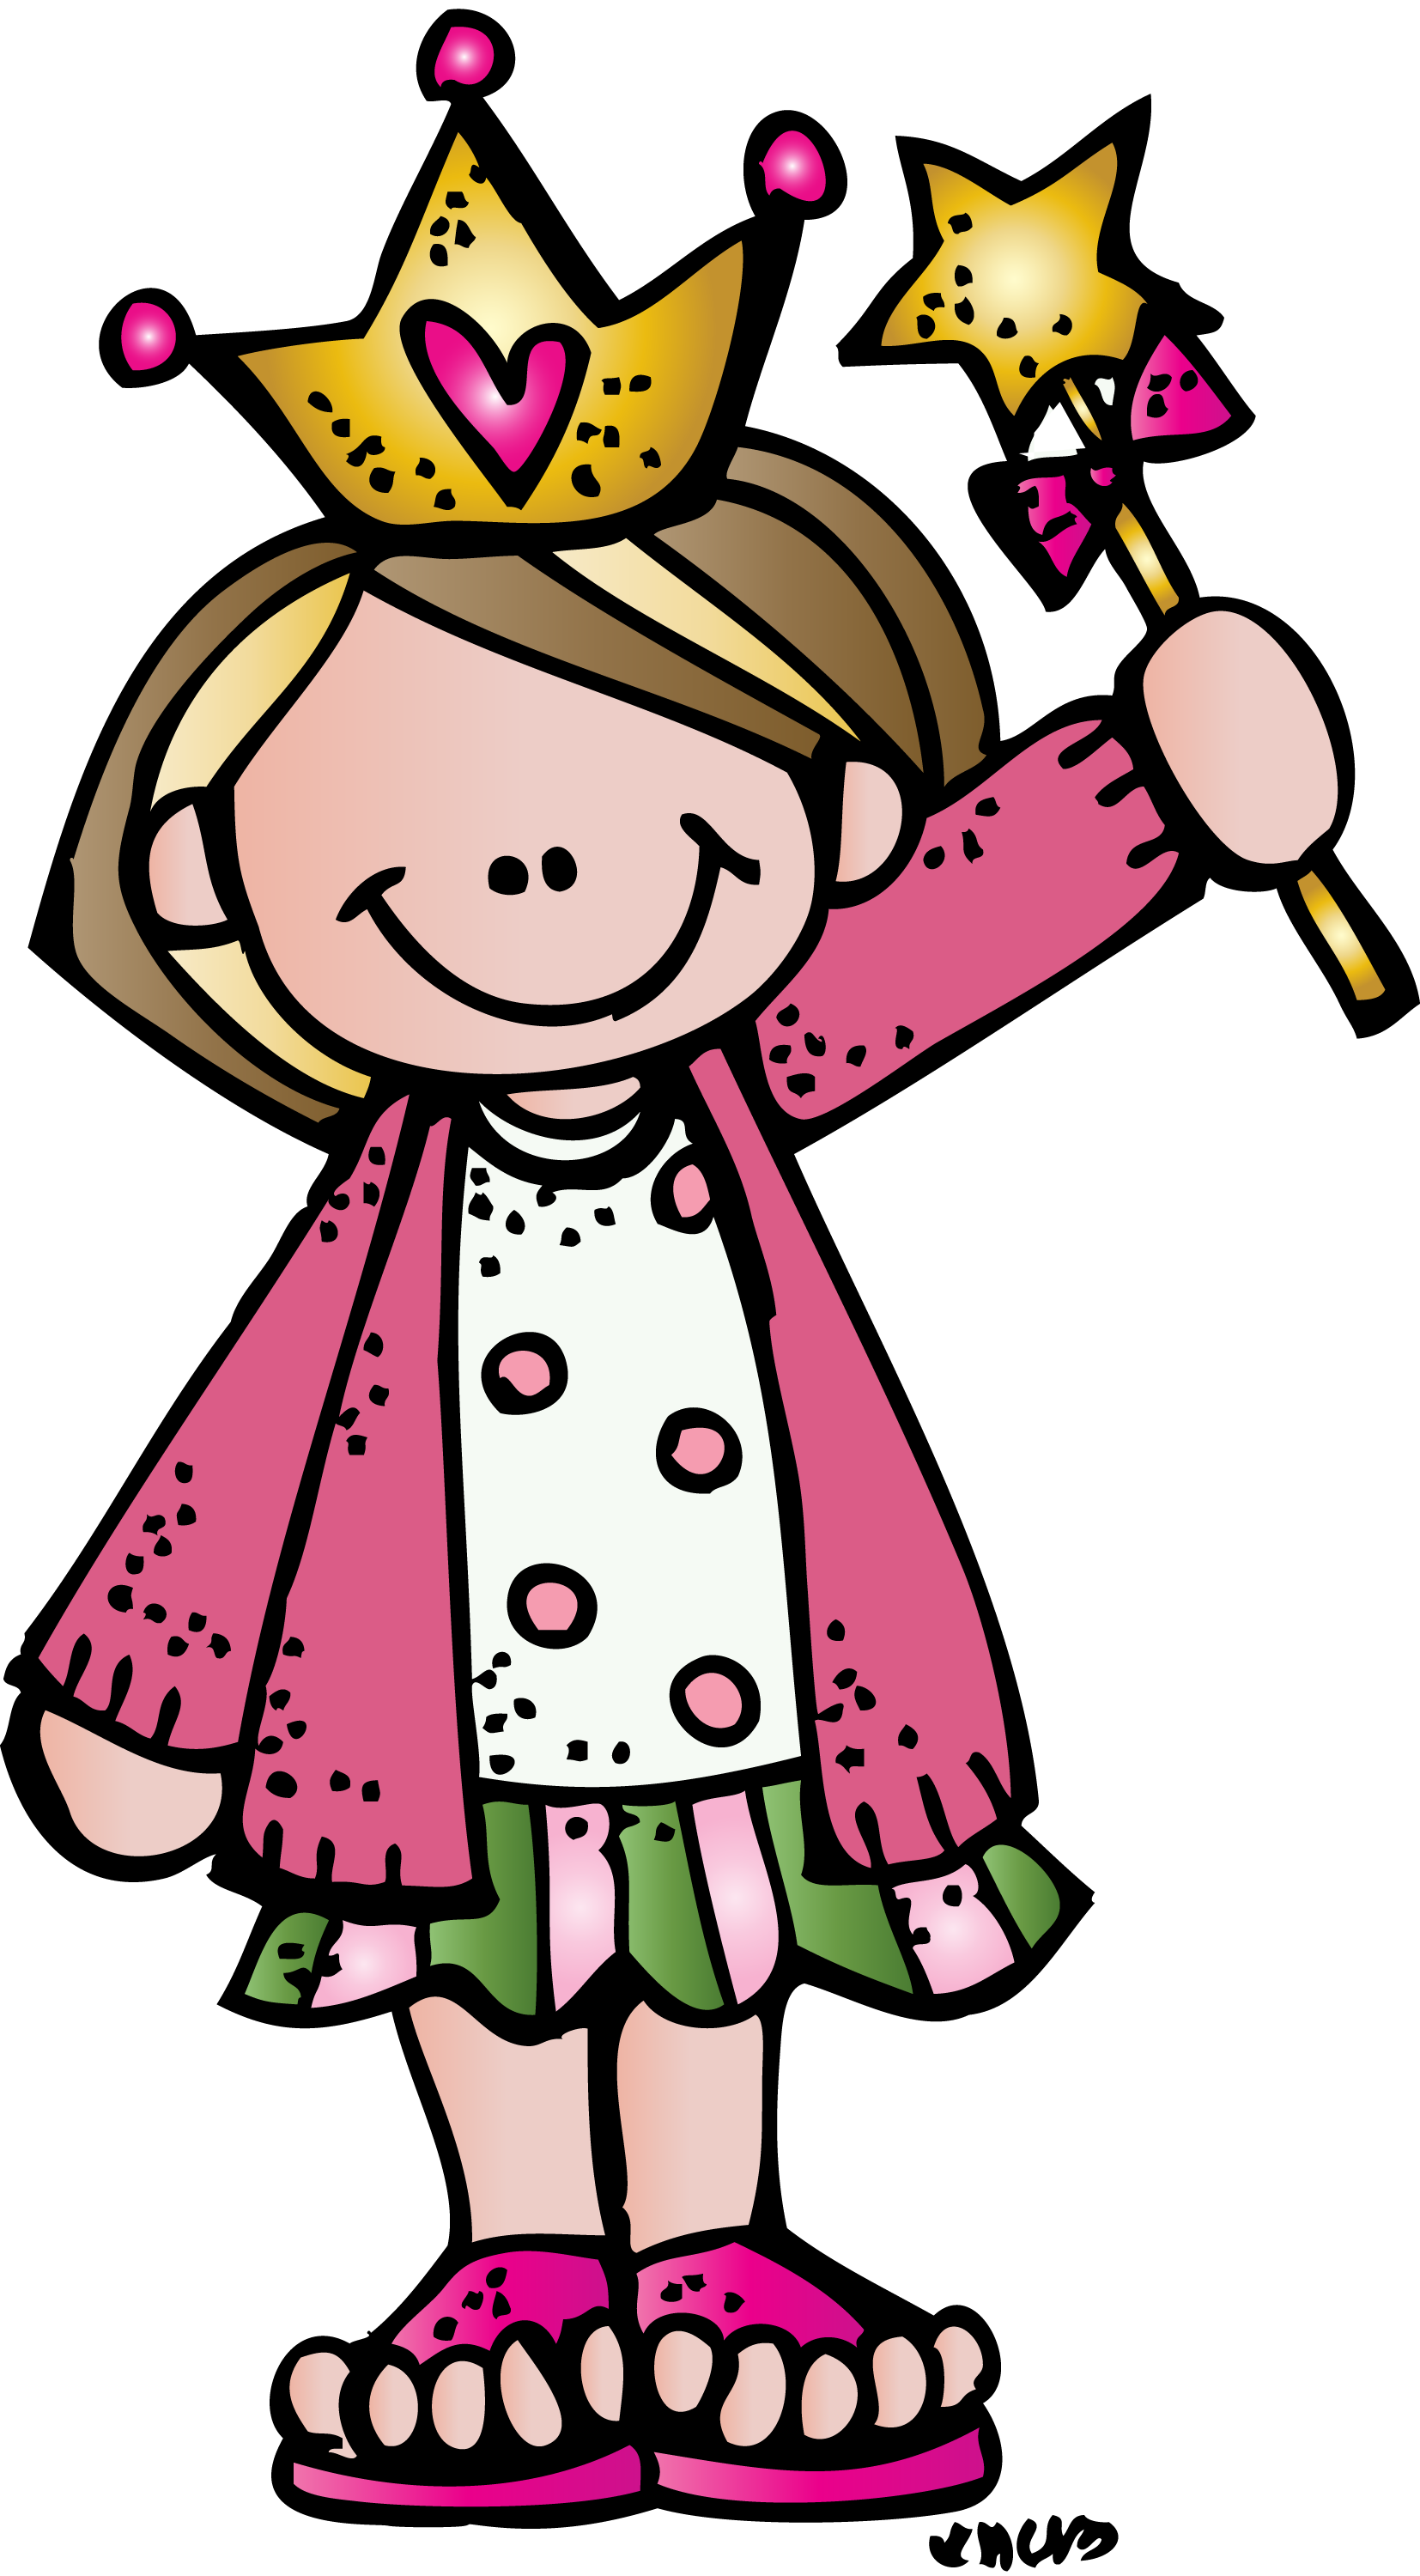 Girly clipart doodle. Pin by carie lennen